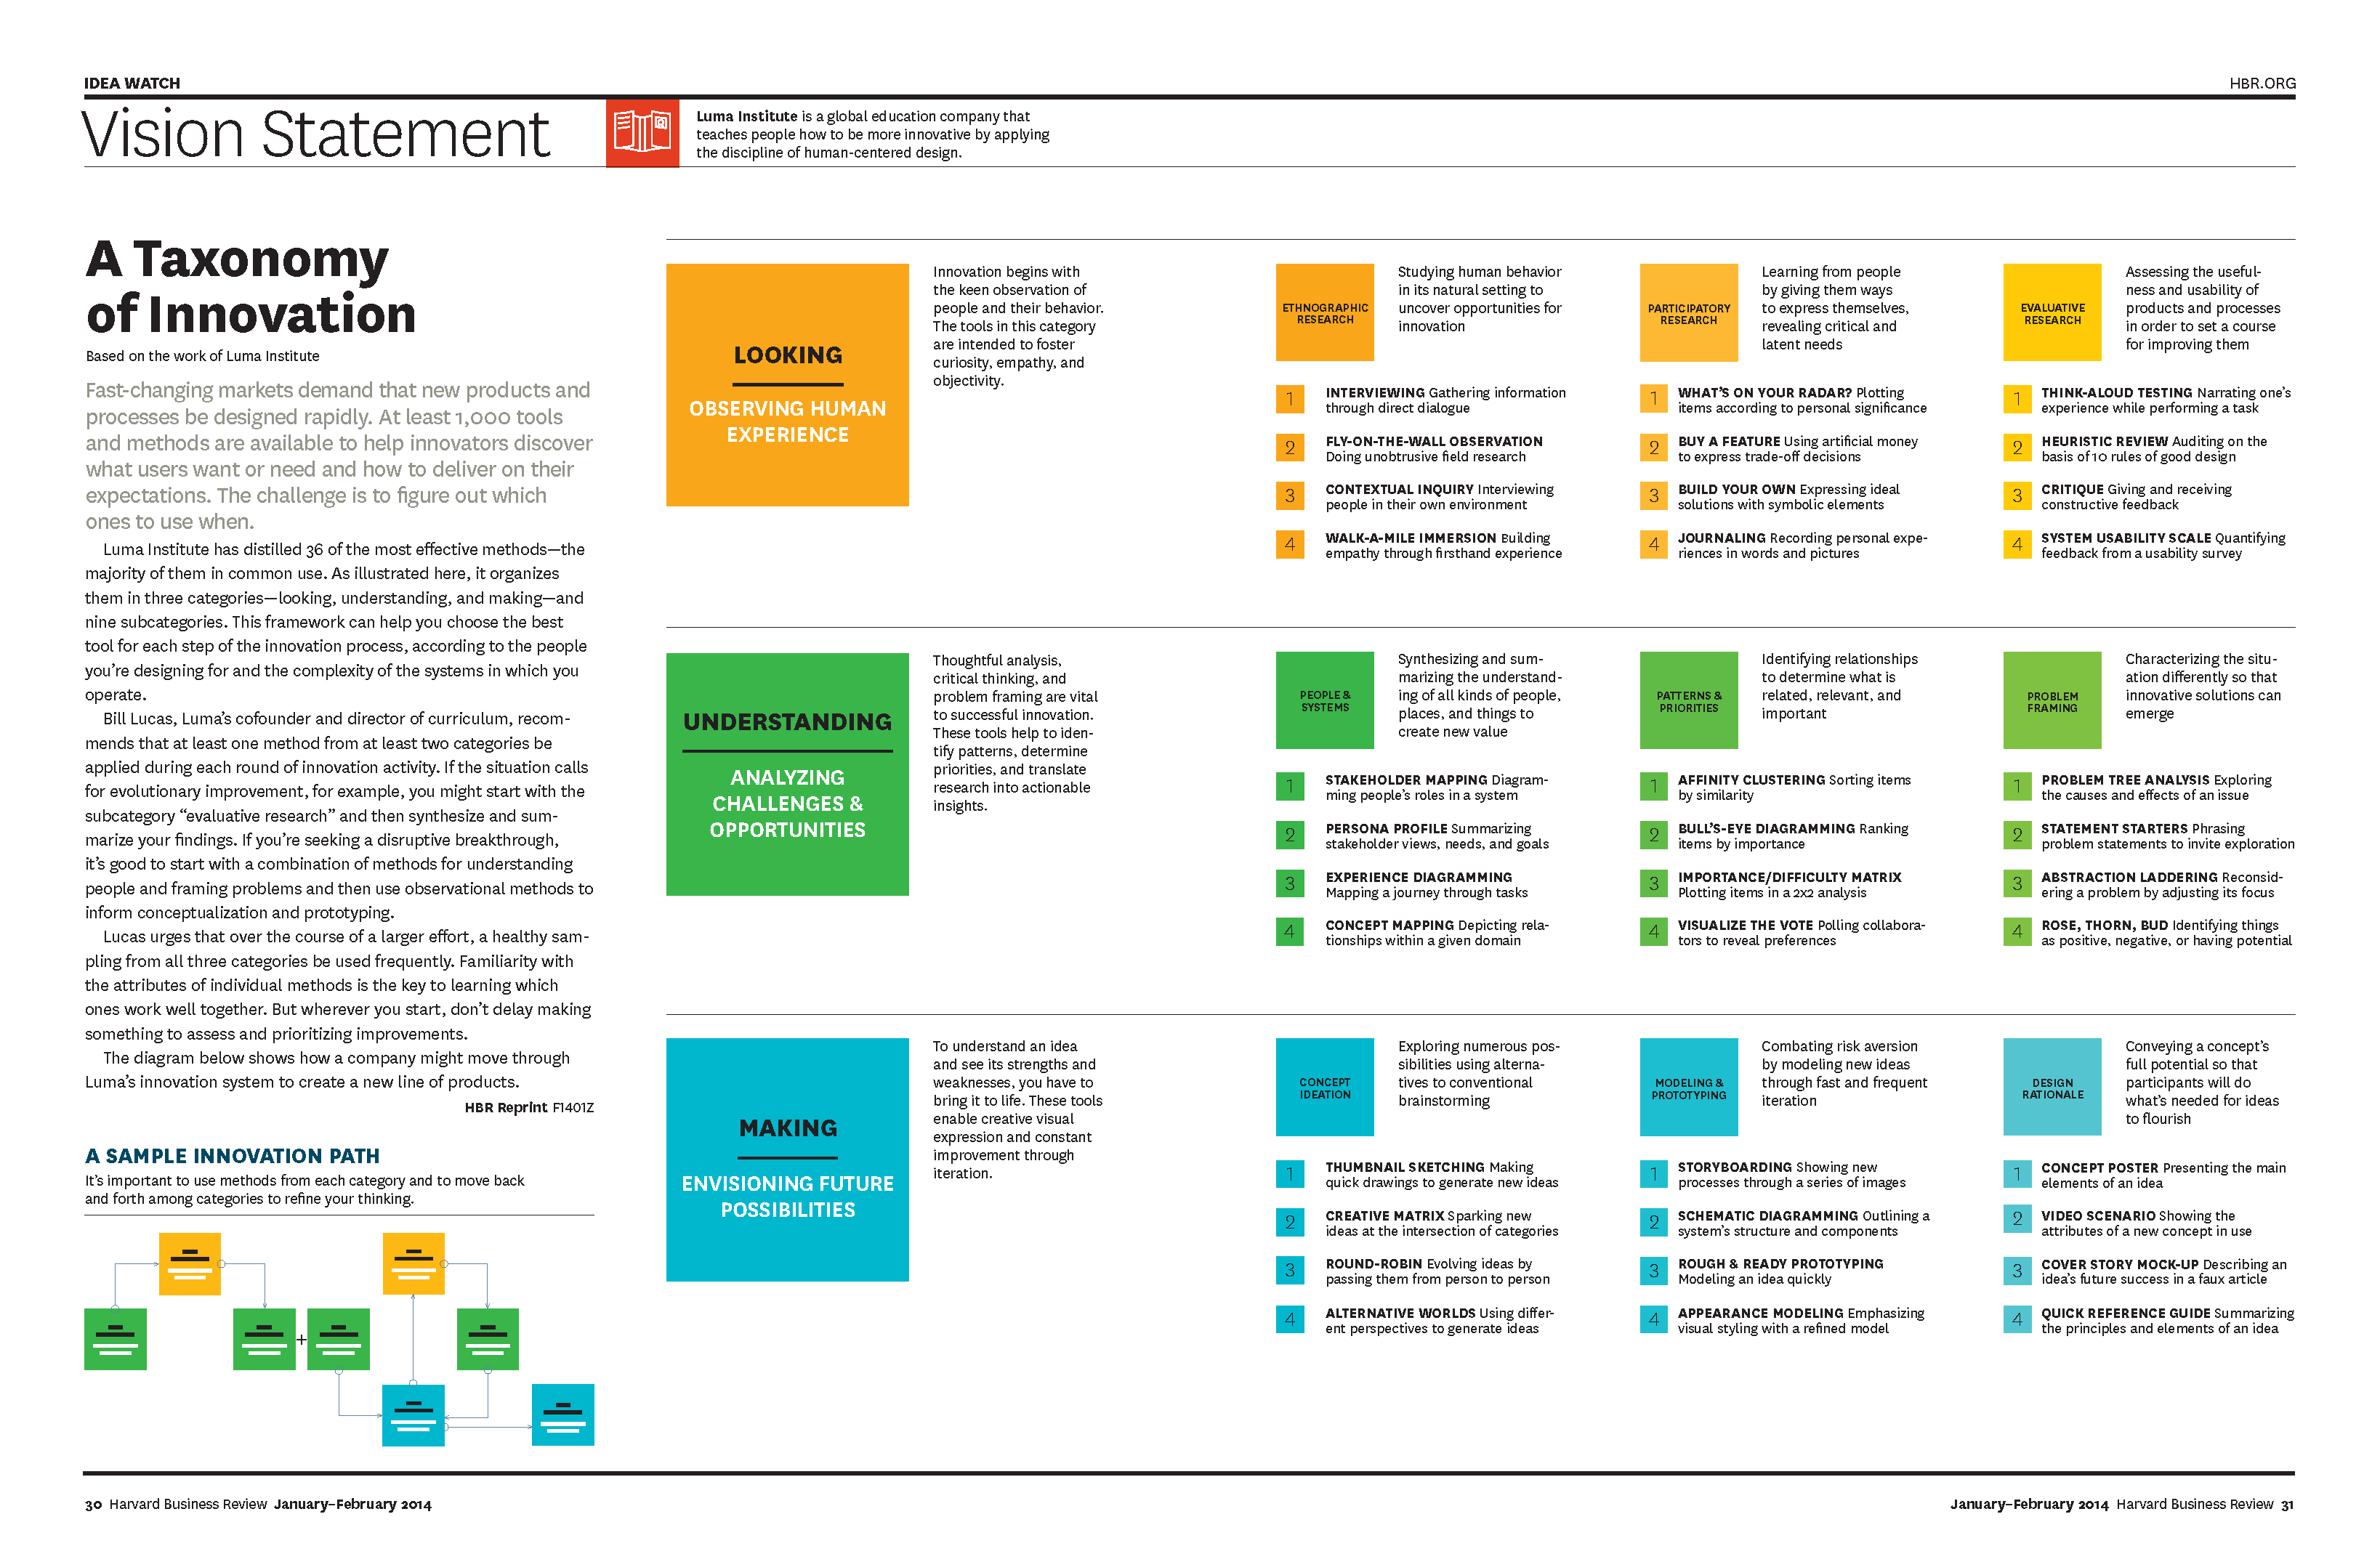 A Taxonomy of Innovation (January/February 14) | Vision Statements ...